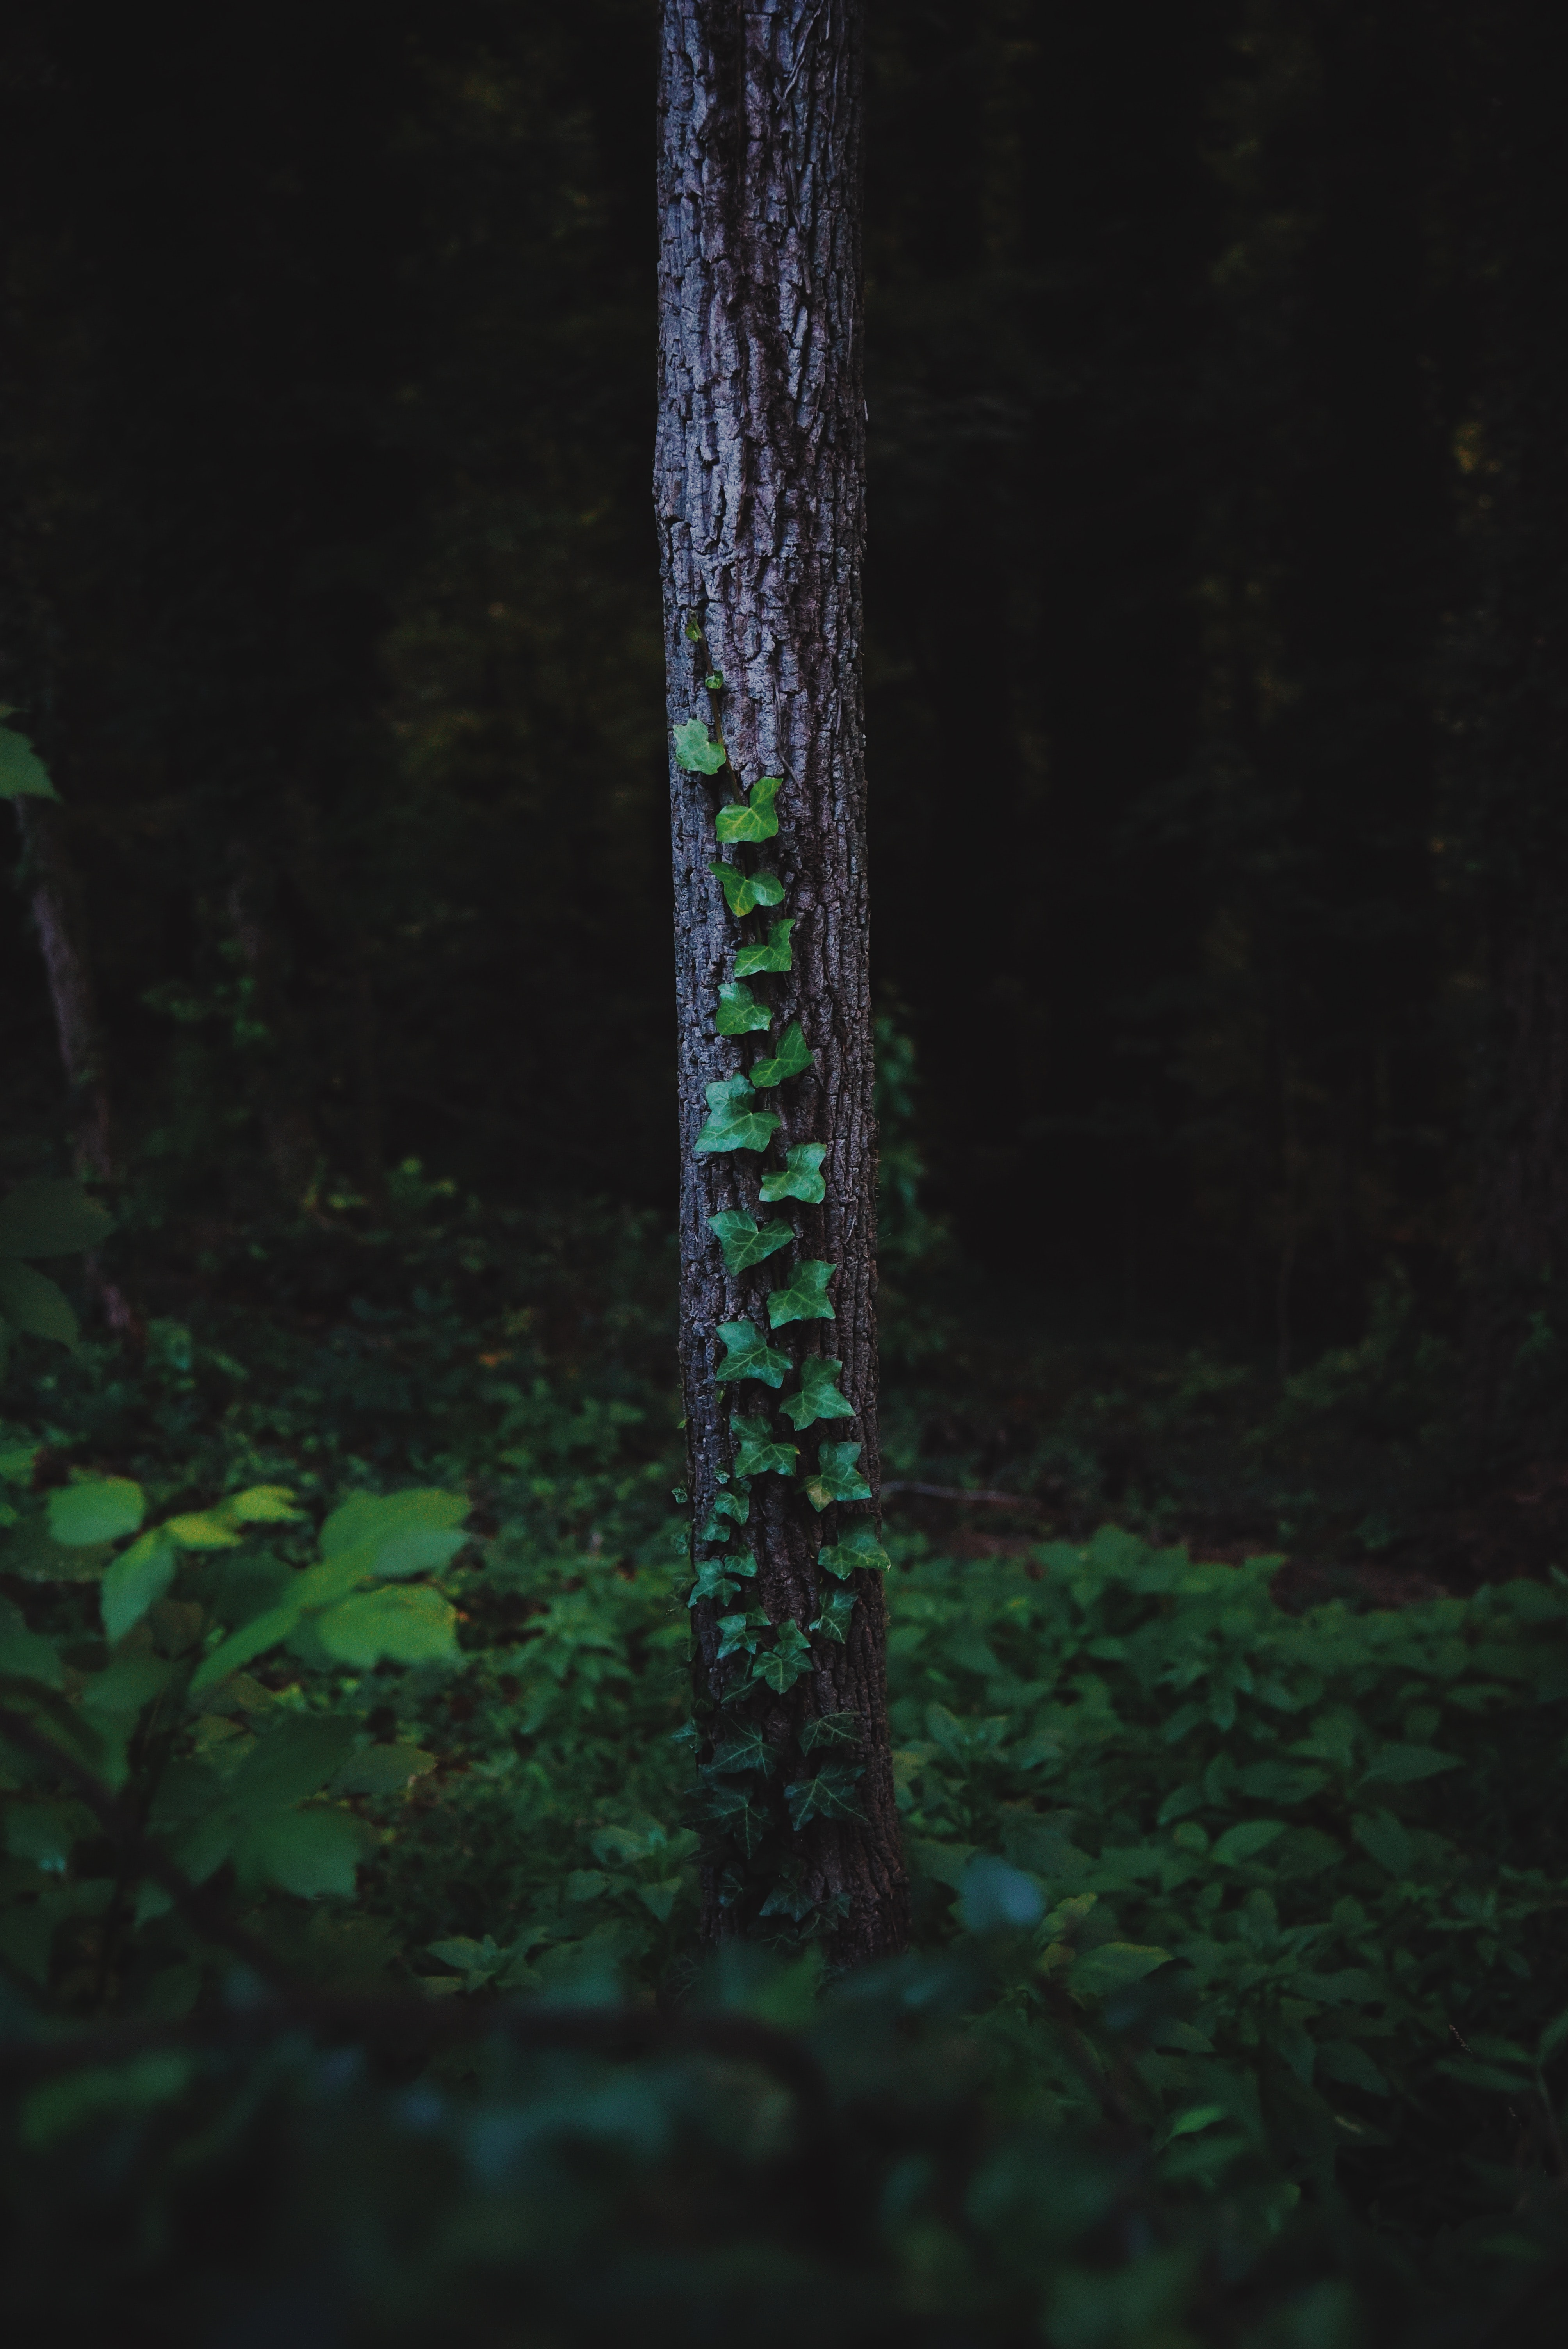 Vine growing on the trunk of a tree in a forest